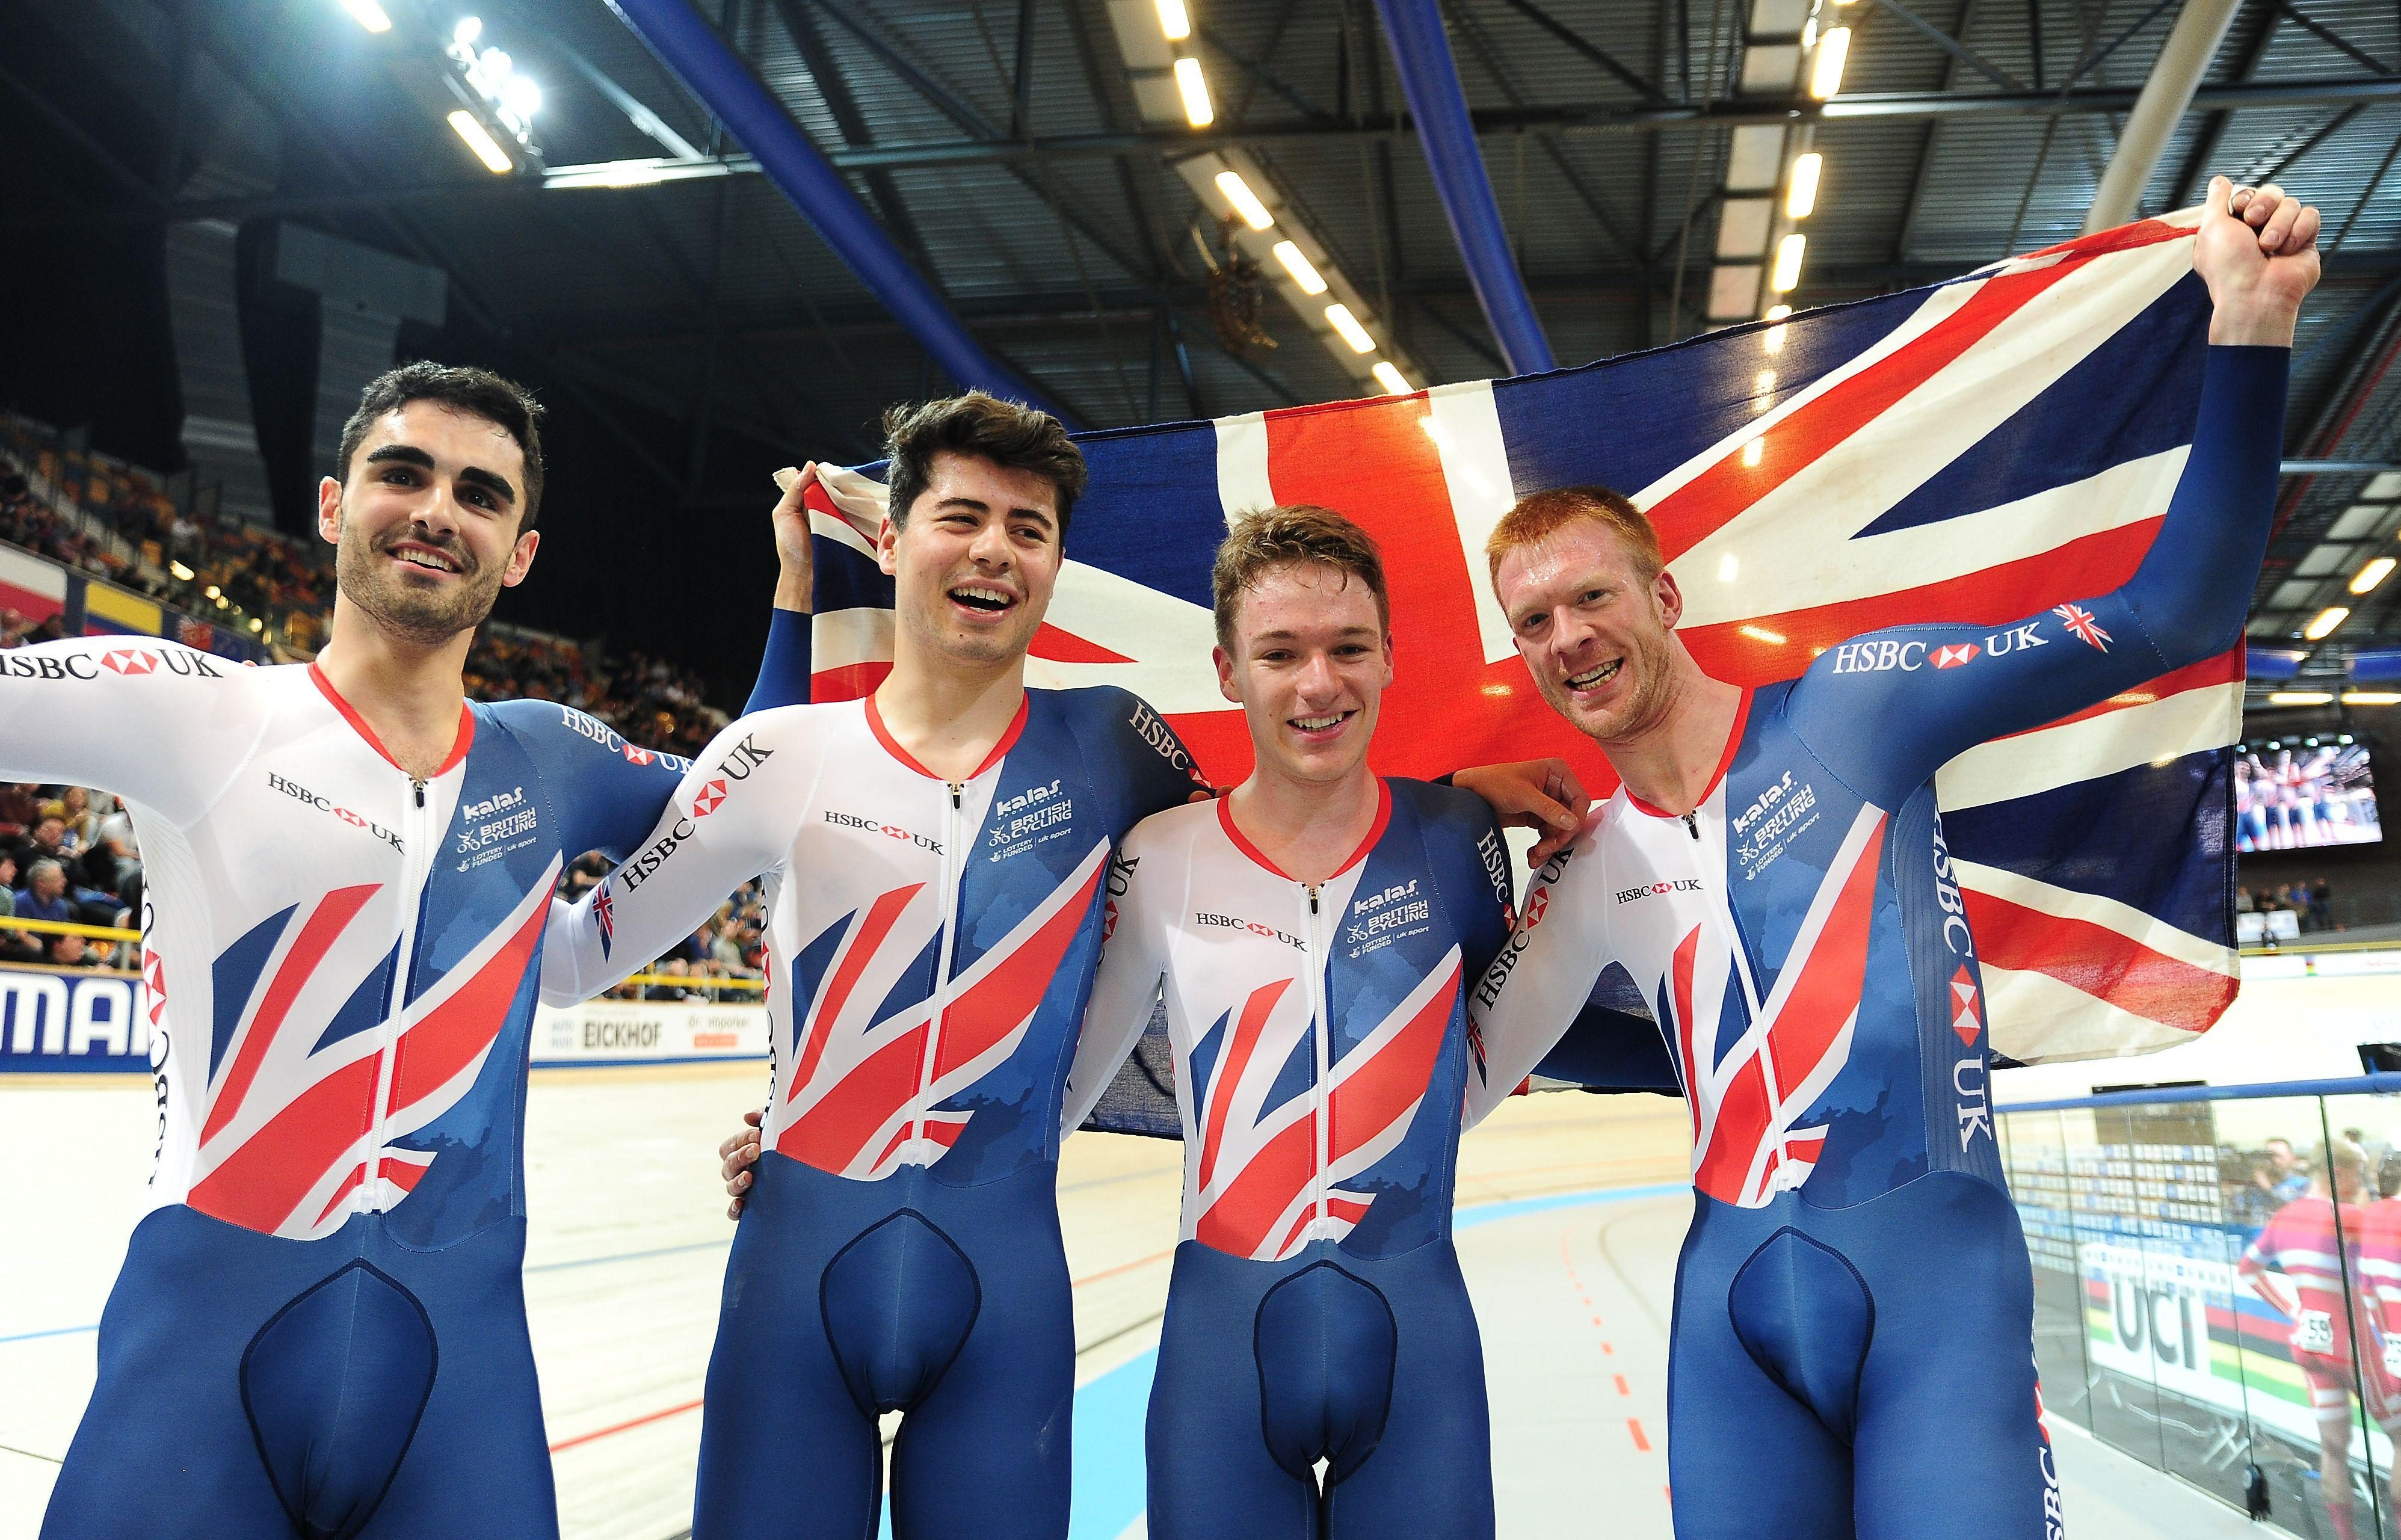 Britain's men including Kian Emadi, left, Charlie Tanfield, Ethan Hayter and Ed Clancy celebrated team pursuit gold as the dominated the gold medal ride over Denmark